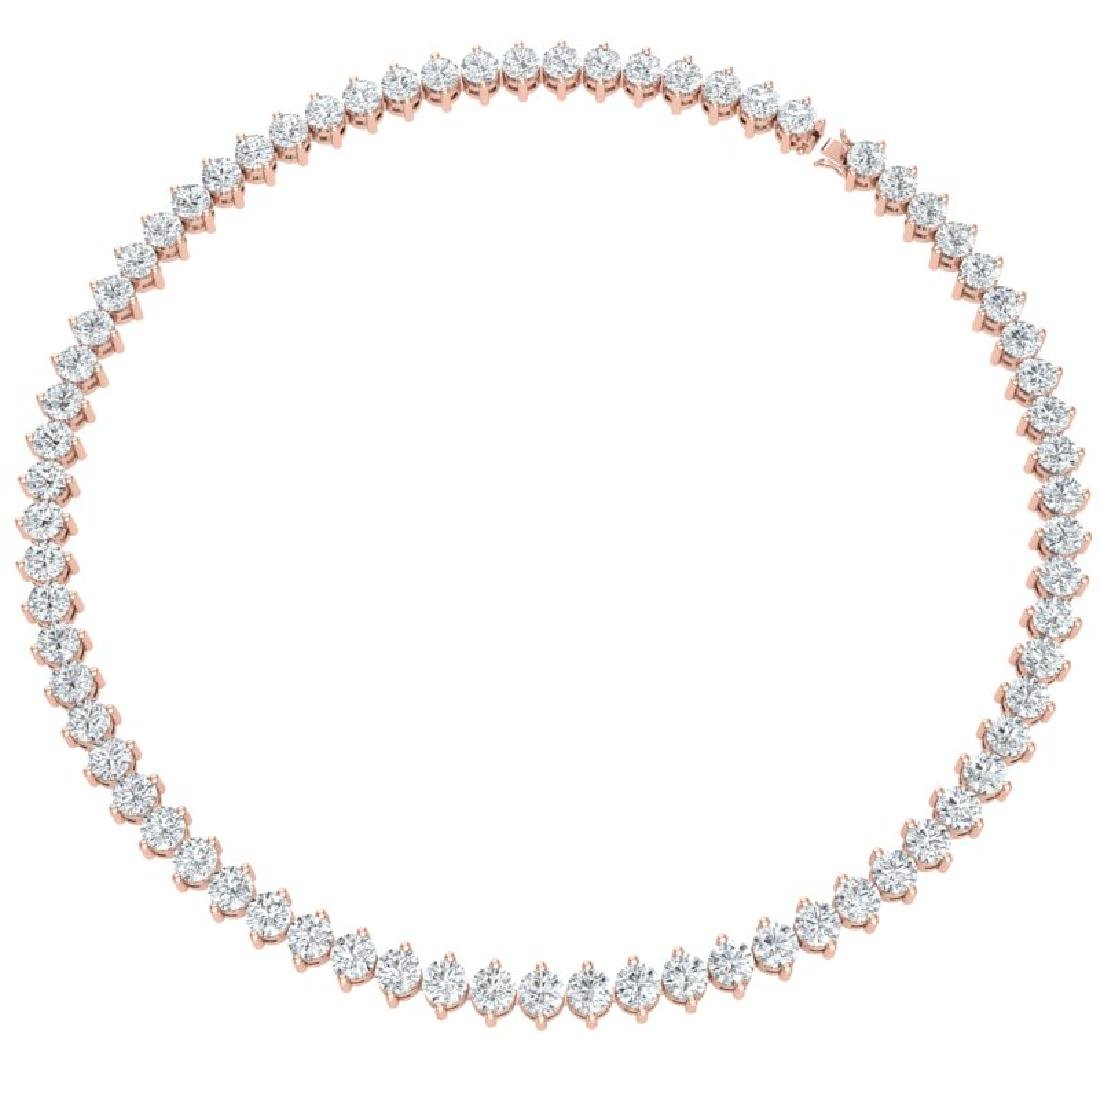 45 CTW Certified SI/I Diamond Necklace 18K Rose Gold - 3